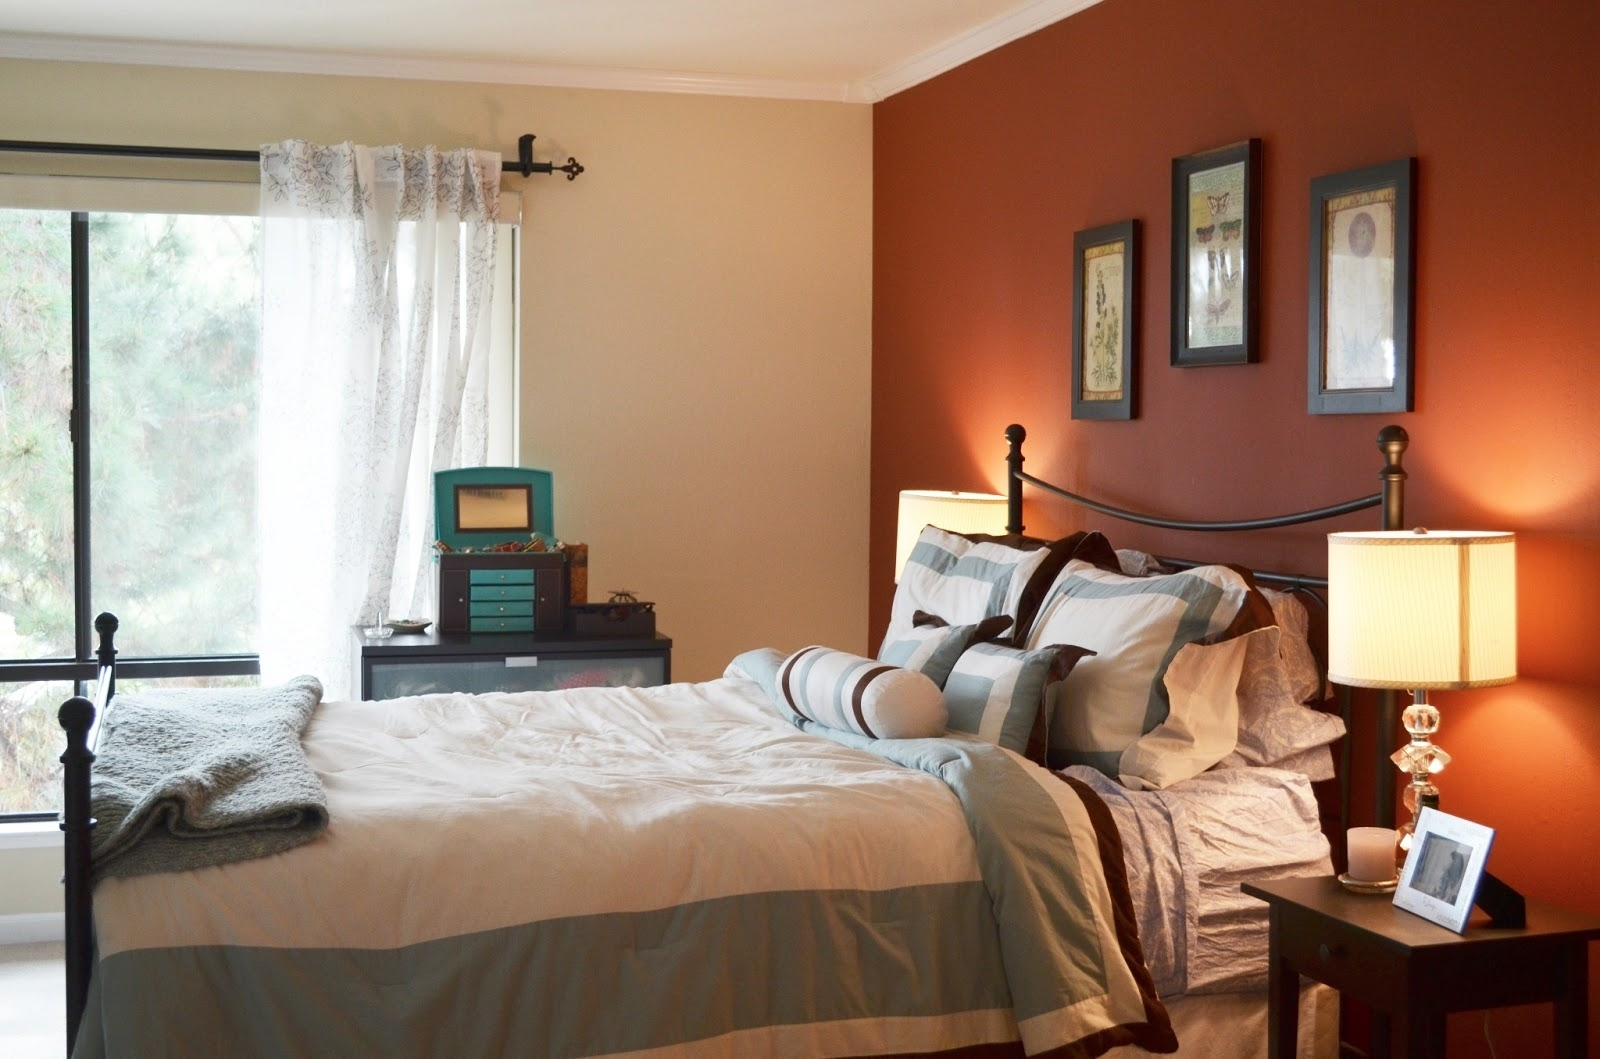 Charming Bedroom Design With Orange Accents Wall Painted And Inside 2017 Wall Colors And Accents (View 7 of 15)